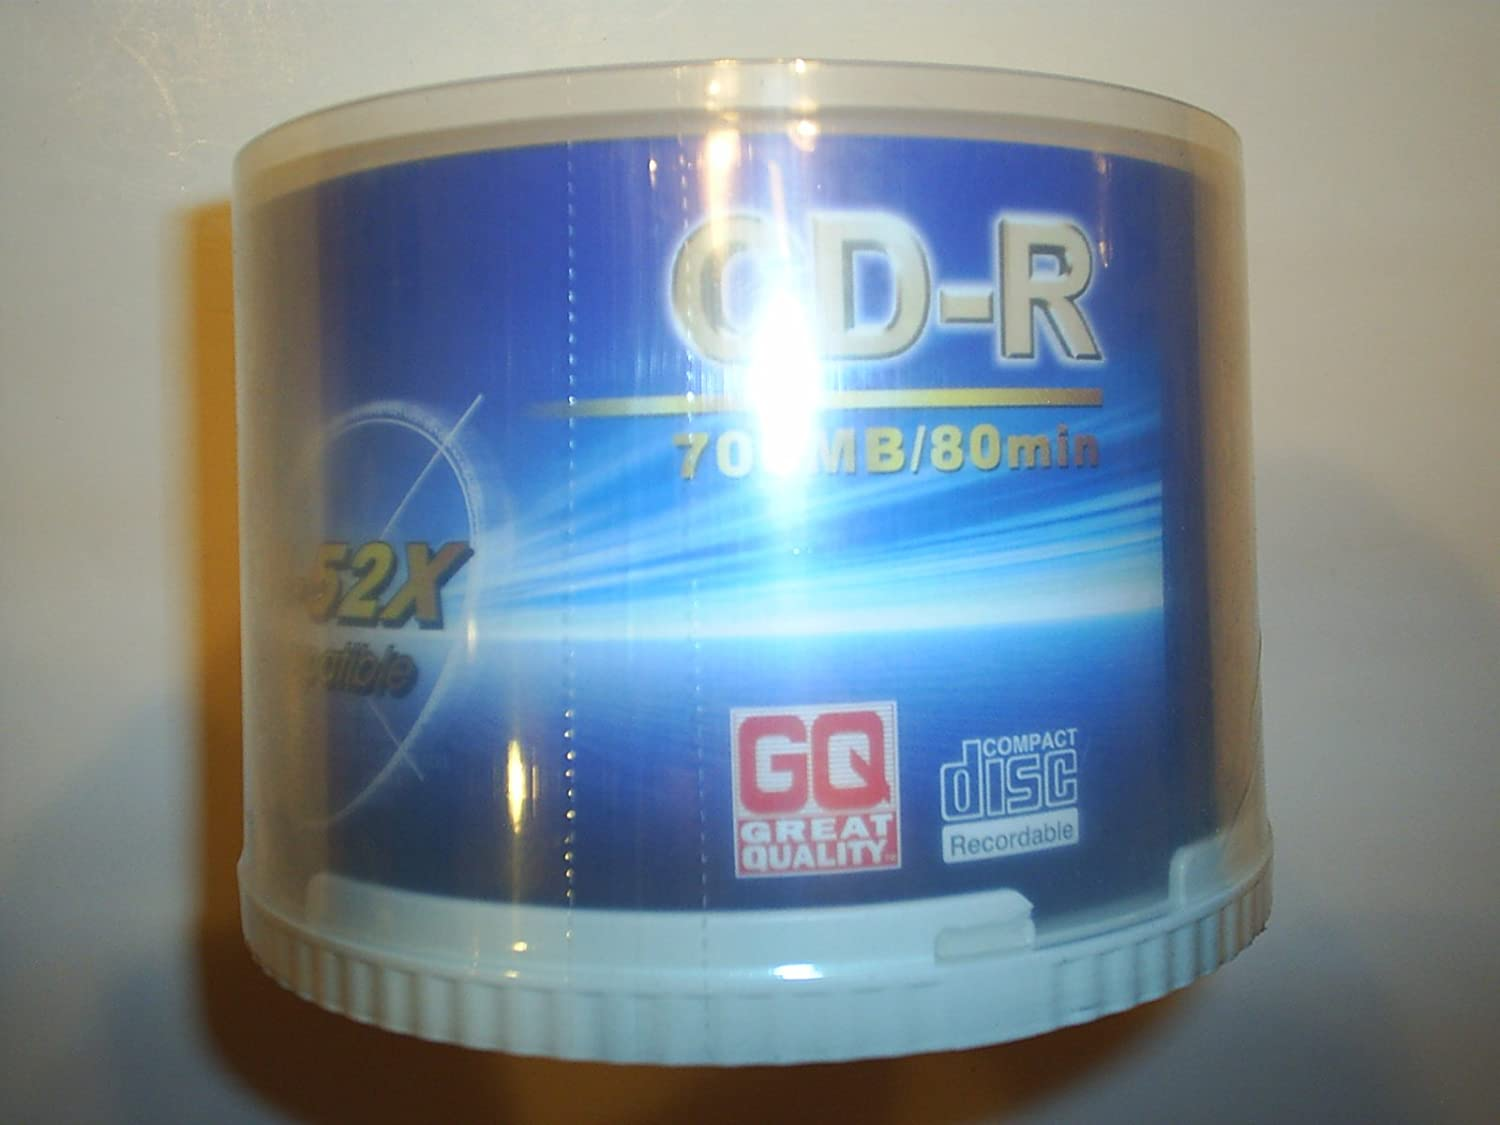 GQ Great Quality CD-R 700MB//80 Minute 50 pack Spindle